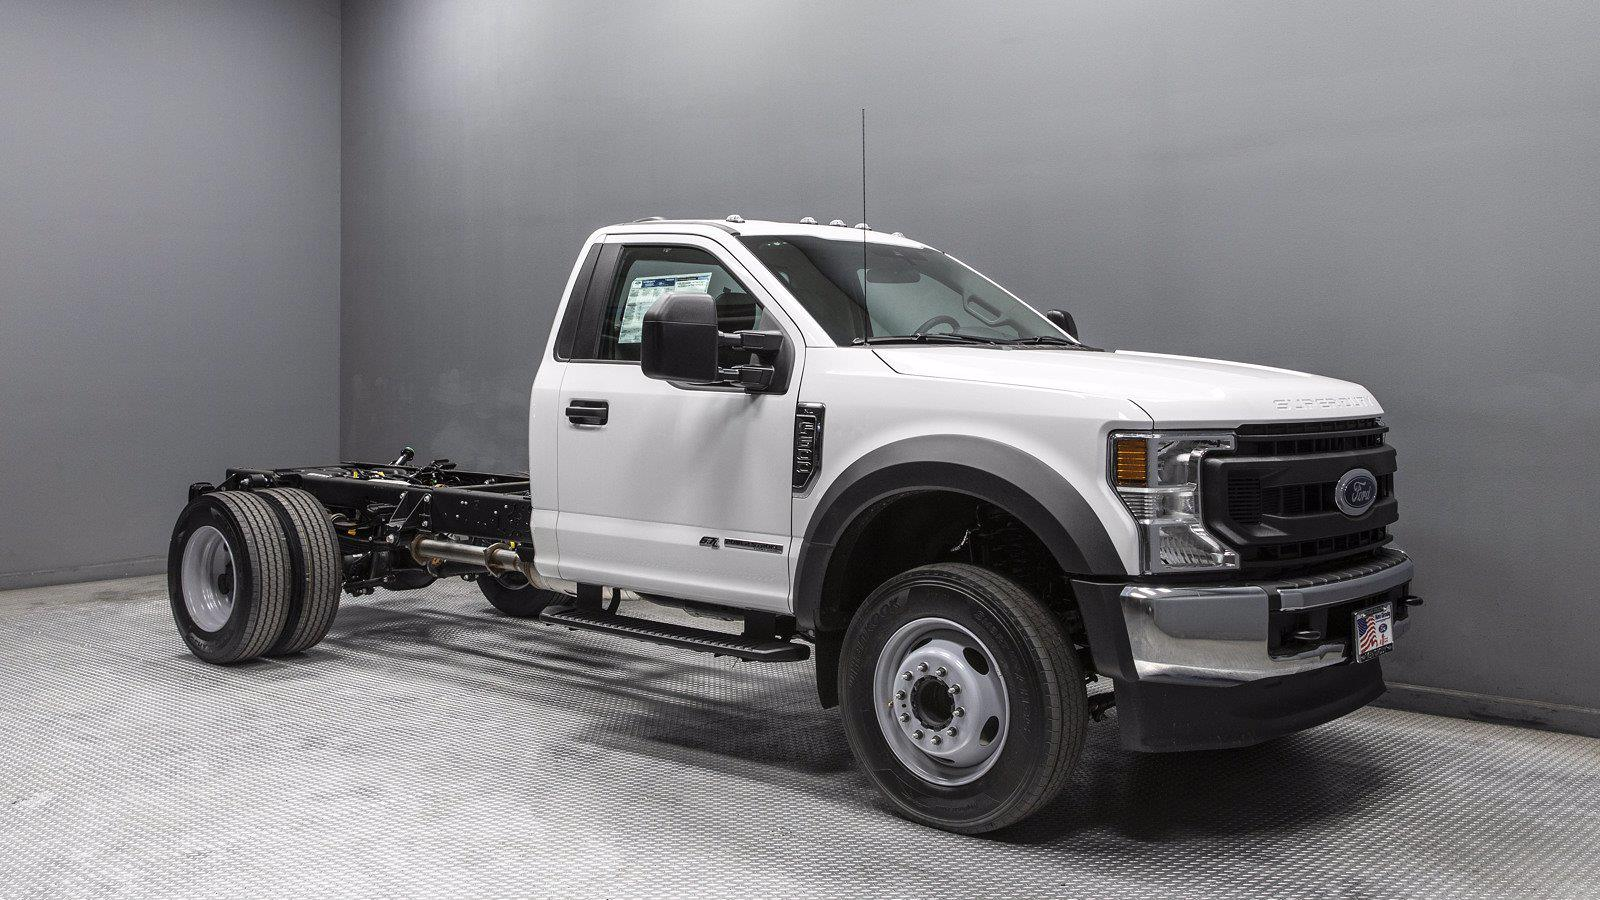 2021 Ford F-600 Regular Cab DRW 4x2, Cab Chassis #210608 - photo 1